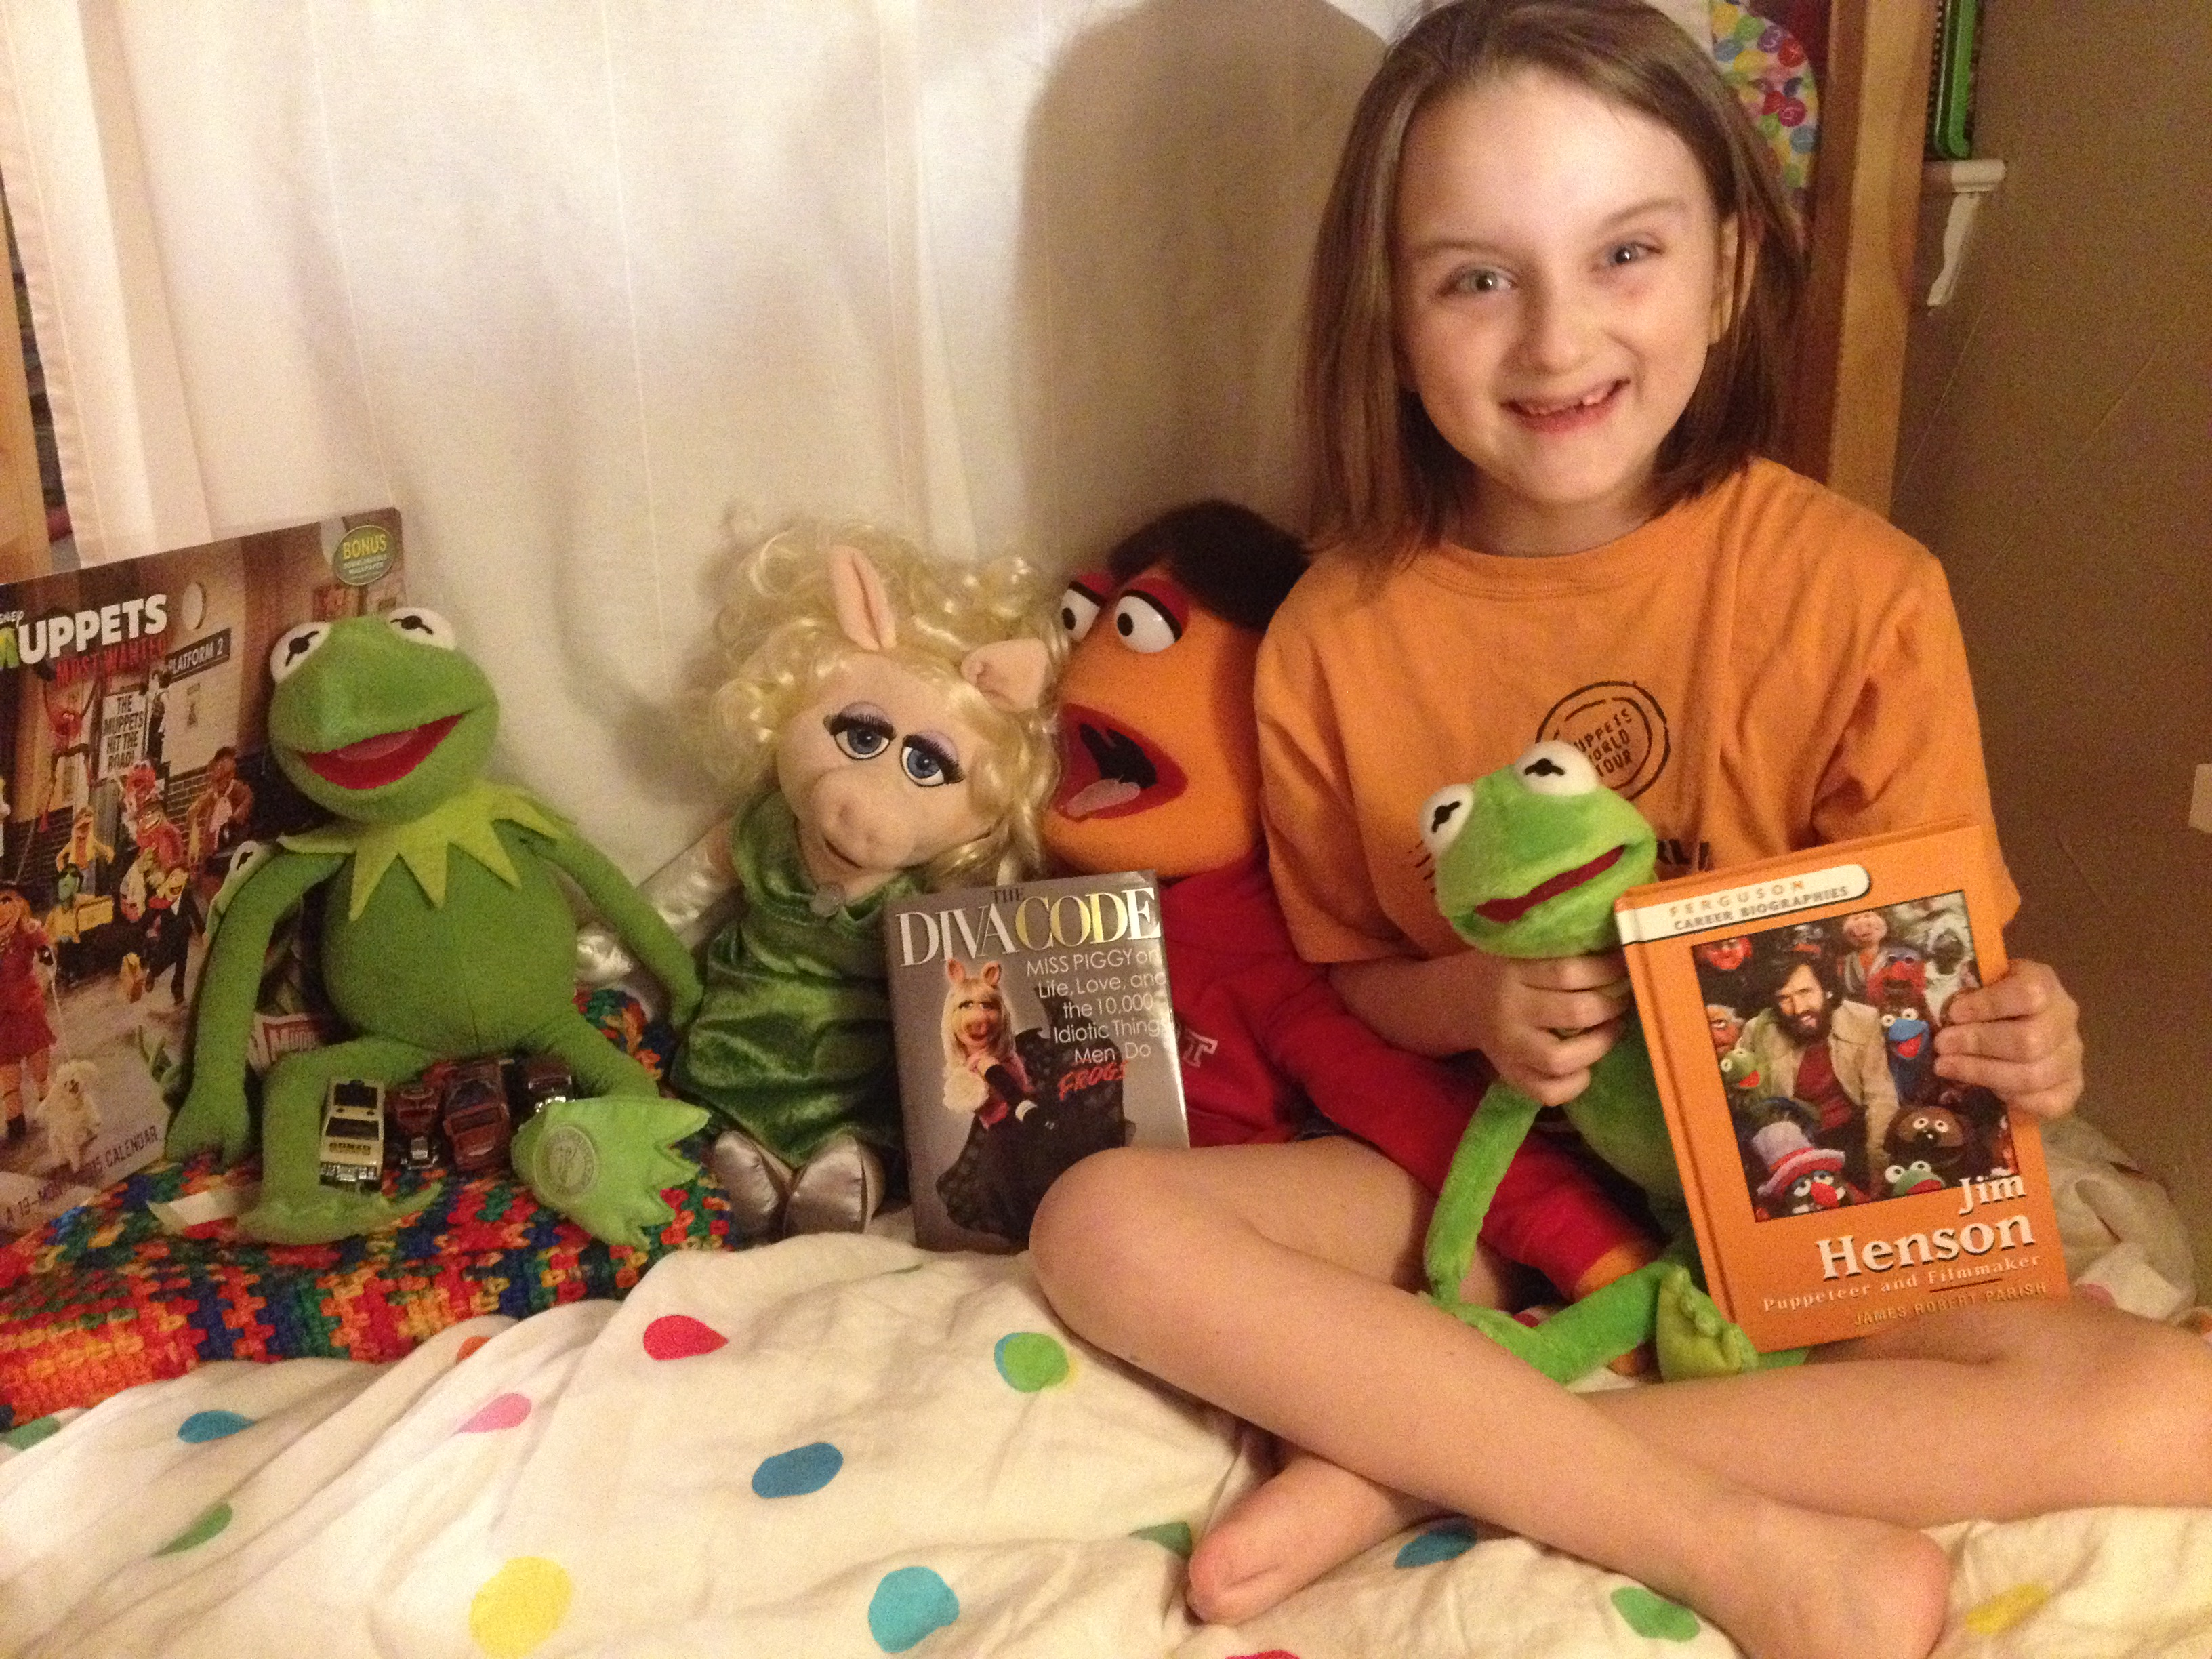 What Muppet Fans Got for Christmas 2014 | The Muppet Mindset